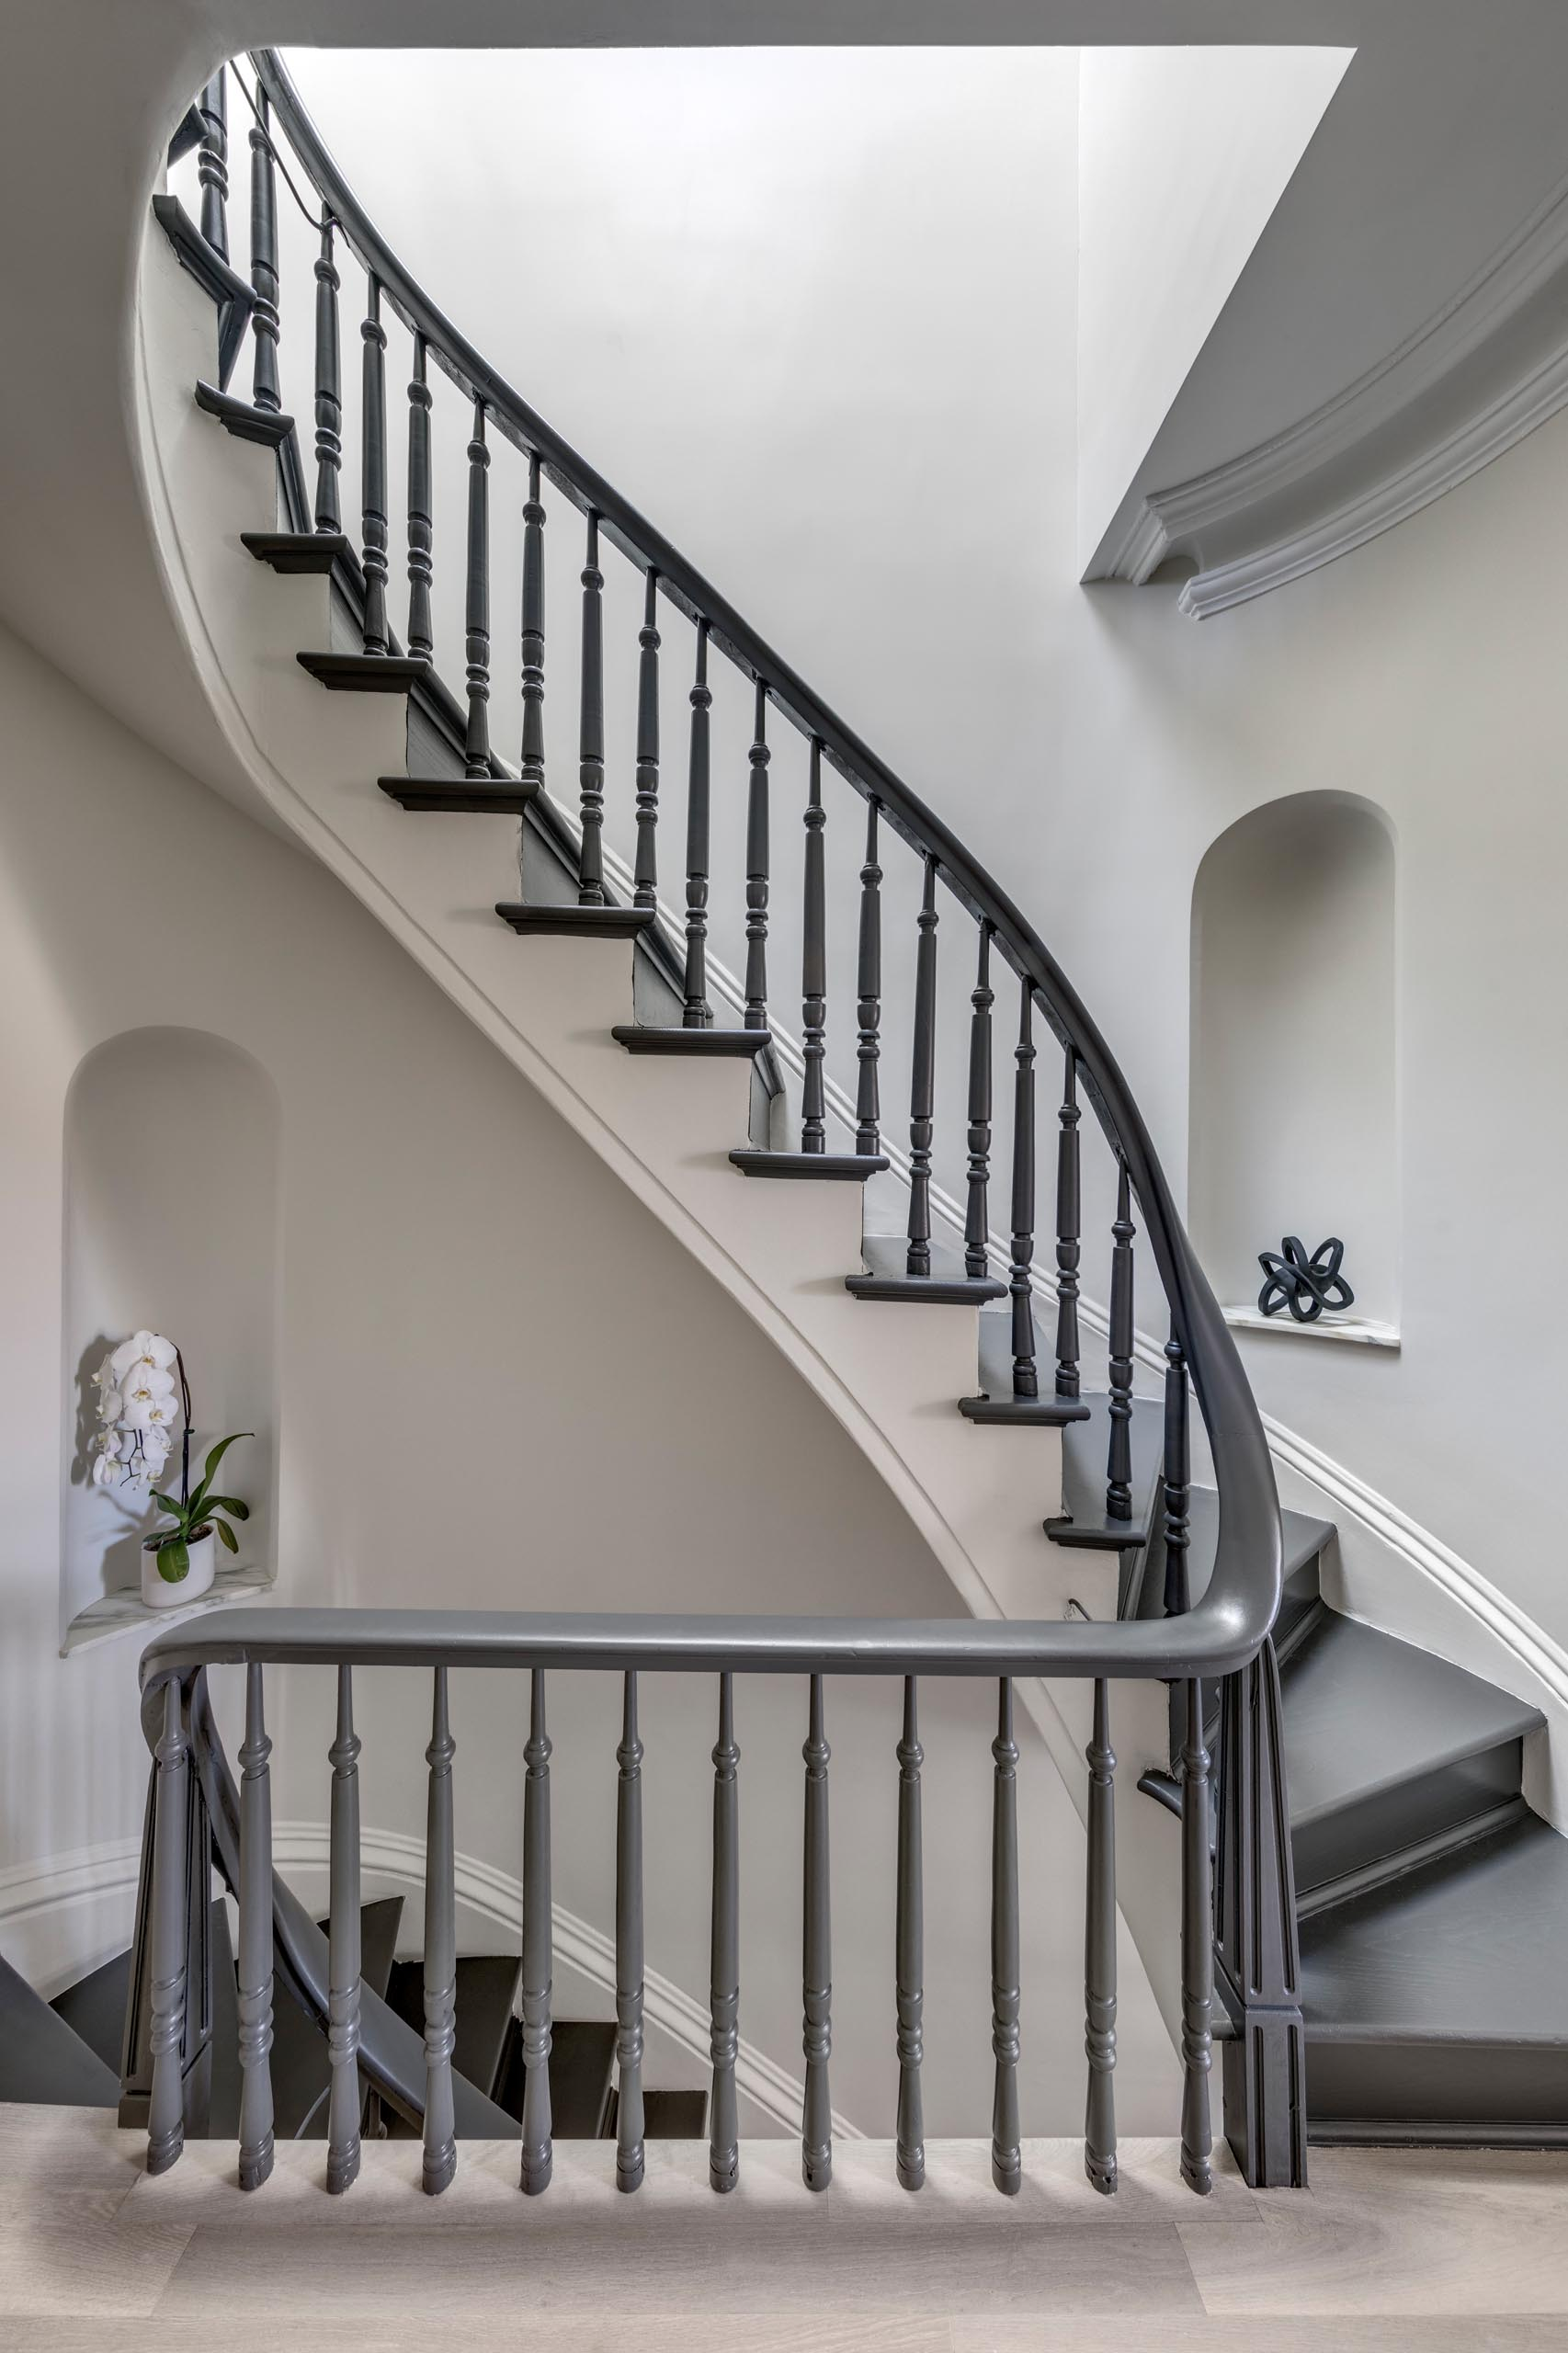 A staircase with a grey handrail and matching stair treads.